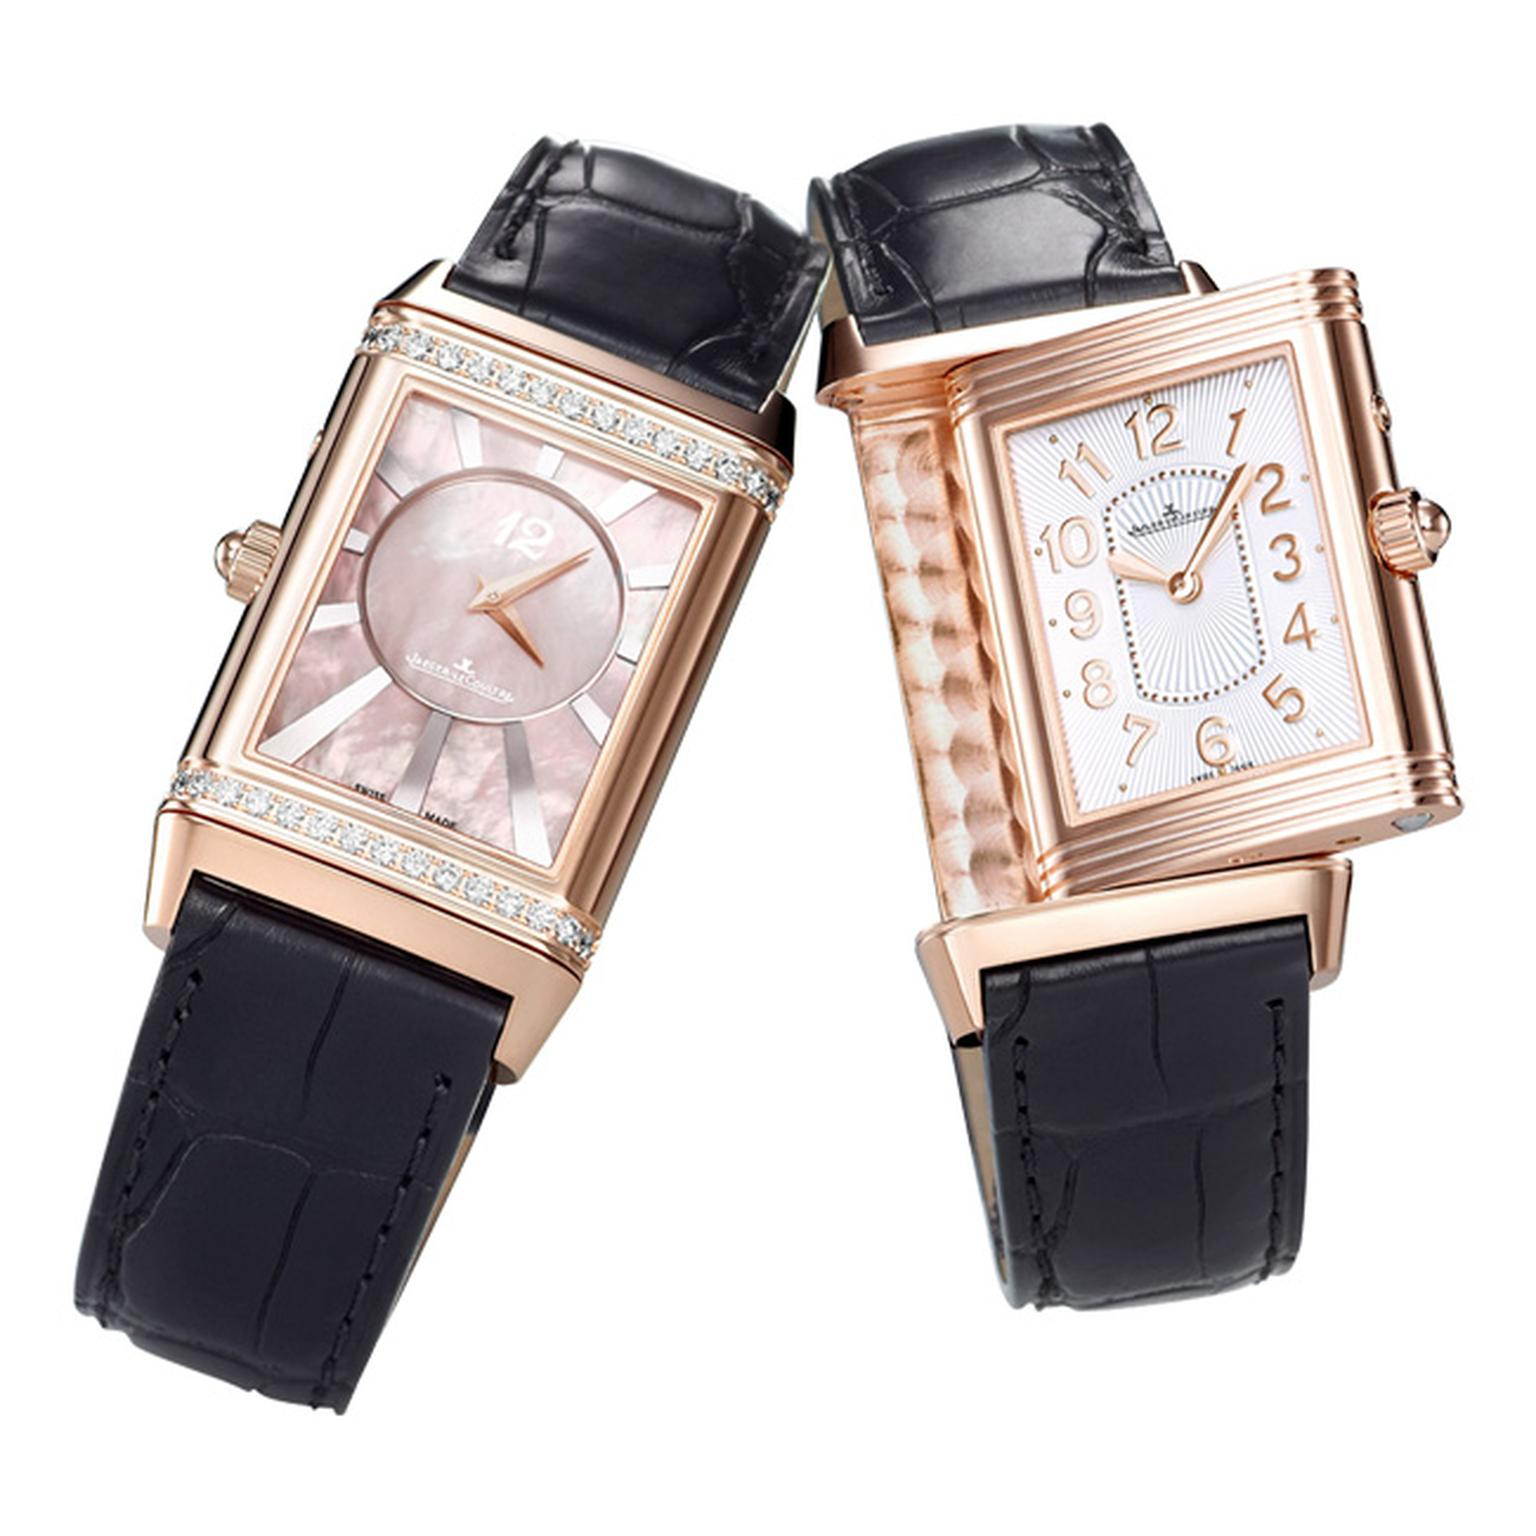 Jaeger-LeCoultre Grande Reverso Lady Ultra Thin Duetto Duo_20140103_Main